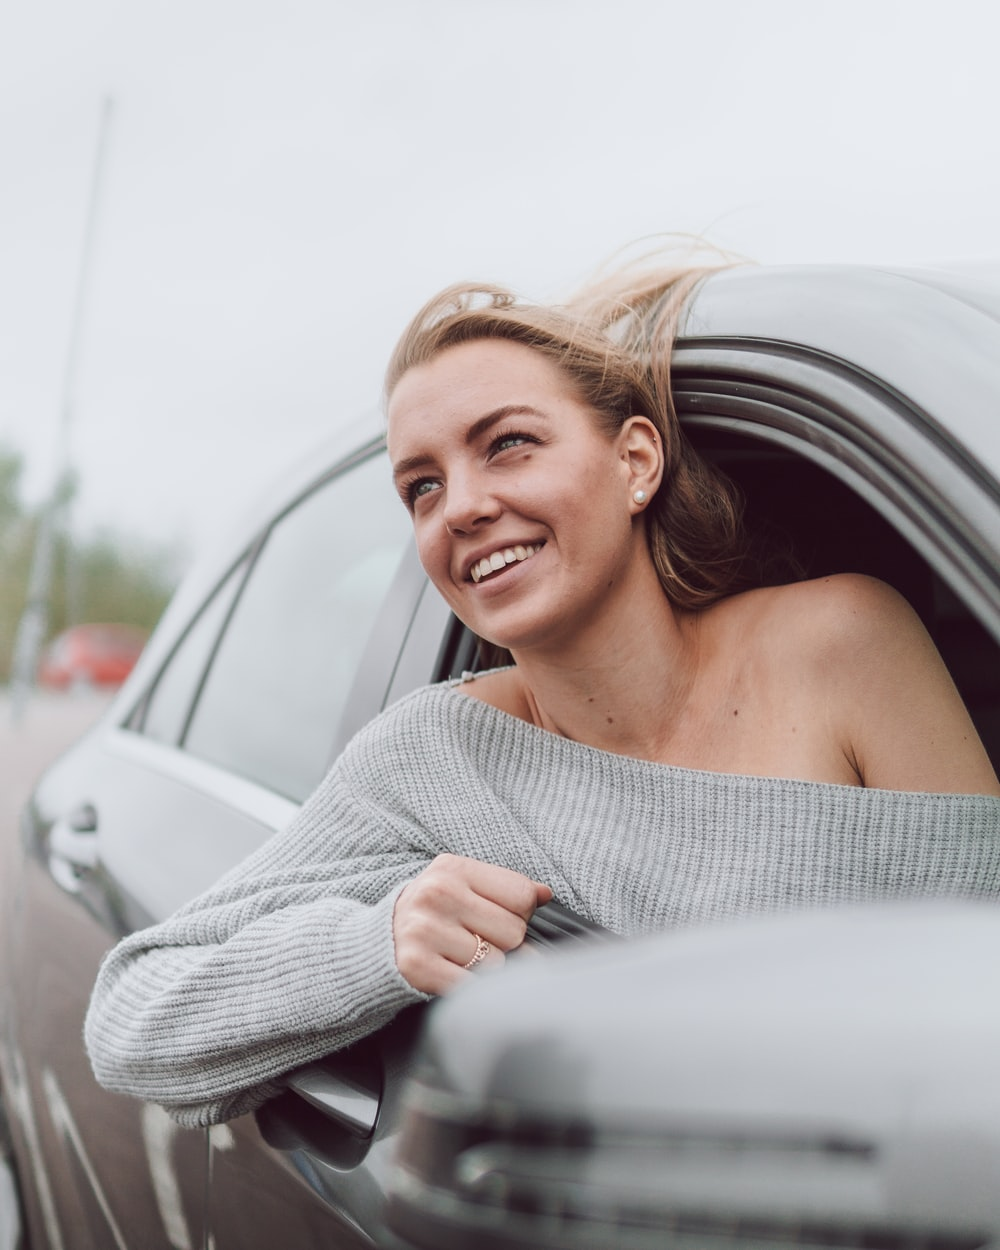 woman in white knit sweater smiling